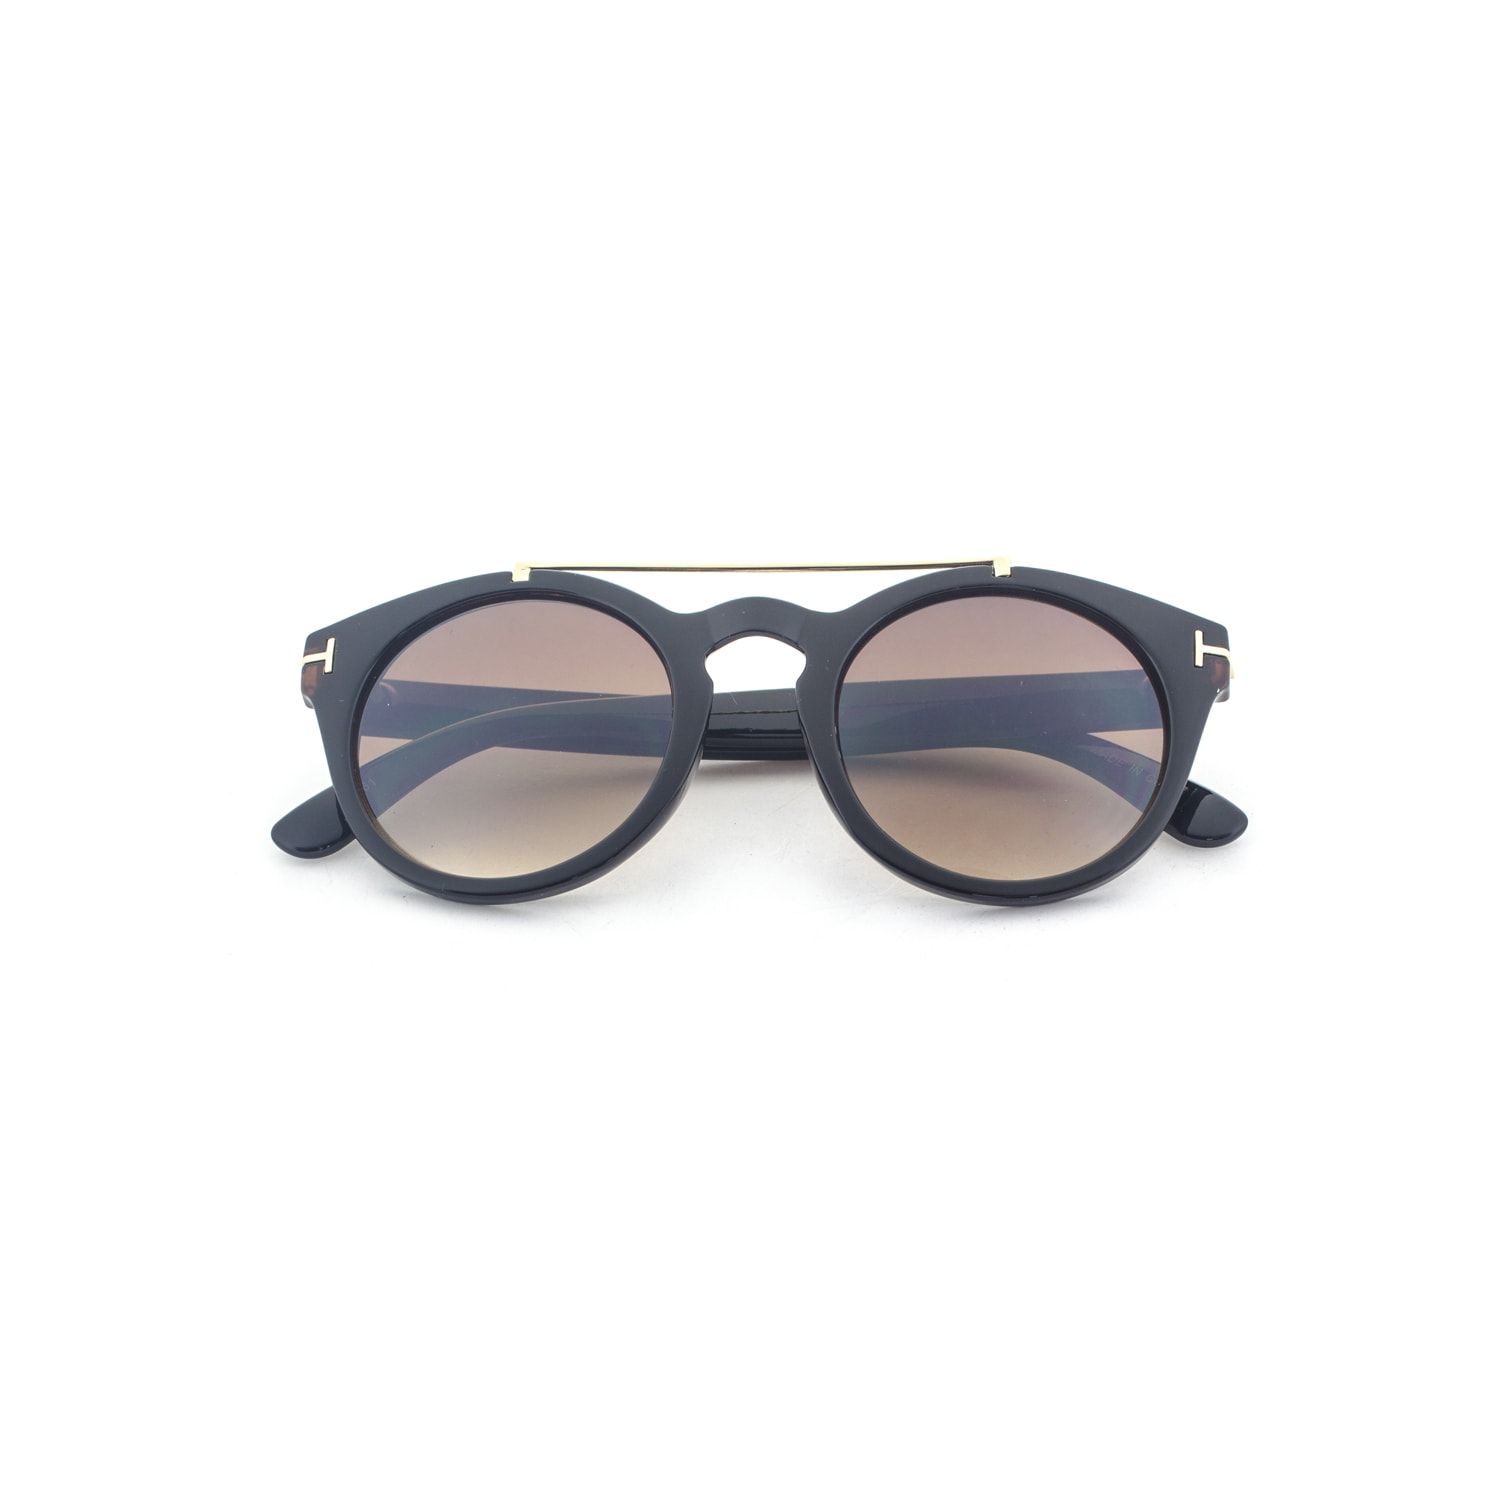 0e65b0fe8a Shop EPIC EYEWEAR Men s Thick Frame Dapper Crossbar UV400 Sunglasses - Free  Shipping On Orders Over  45 - Overstock - 11828443